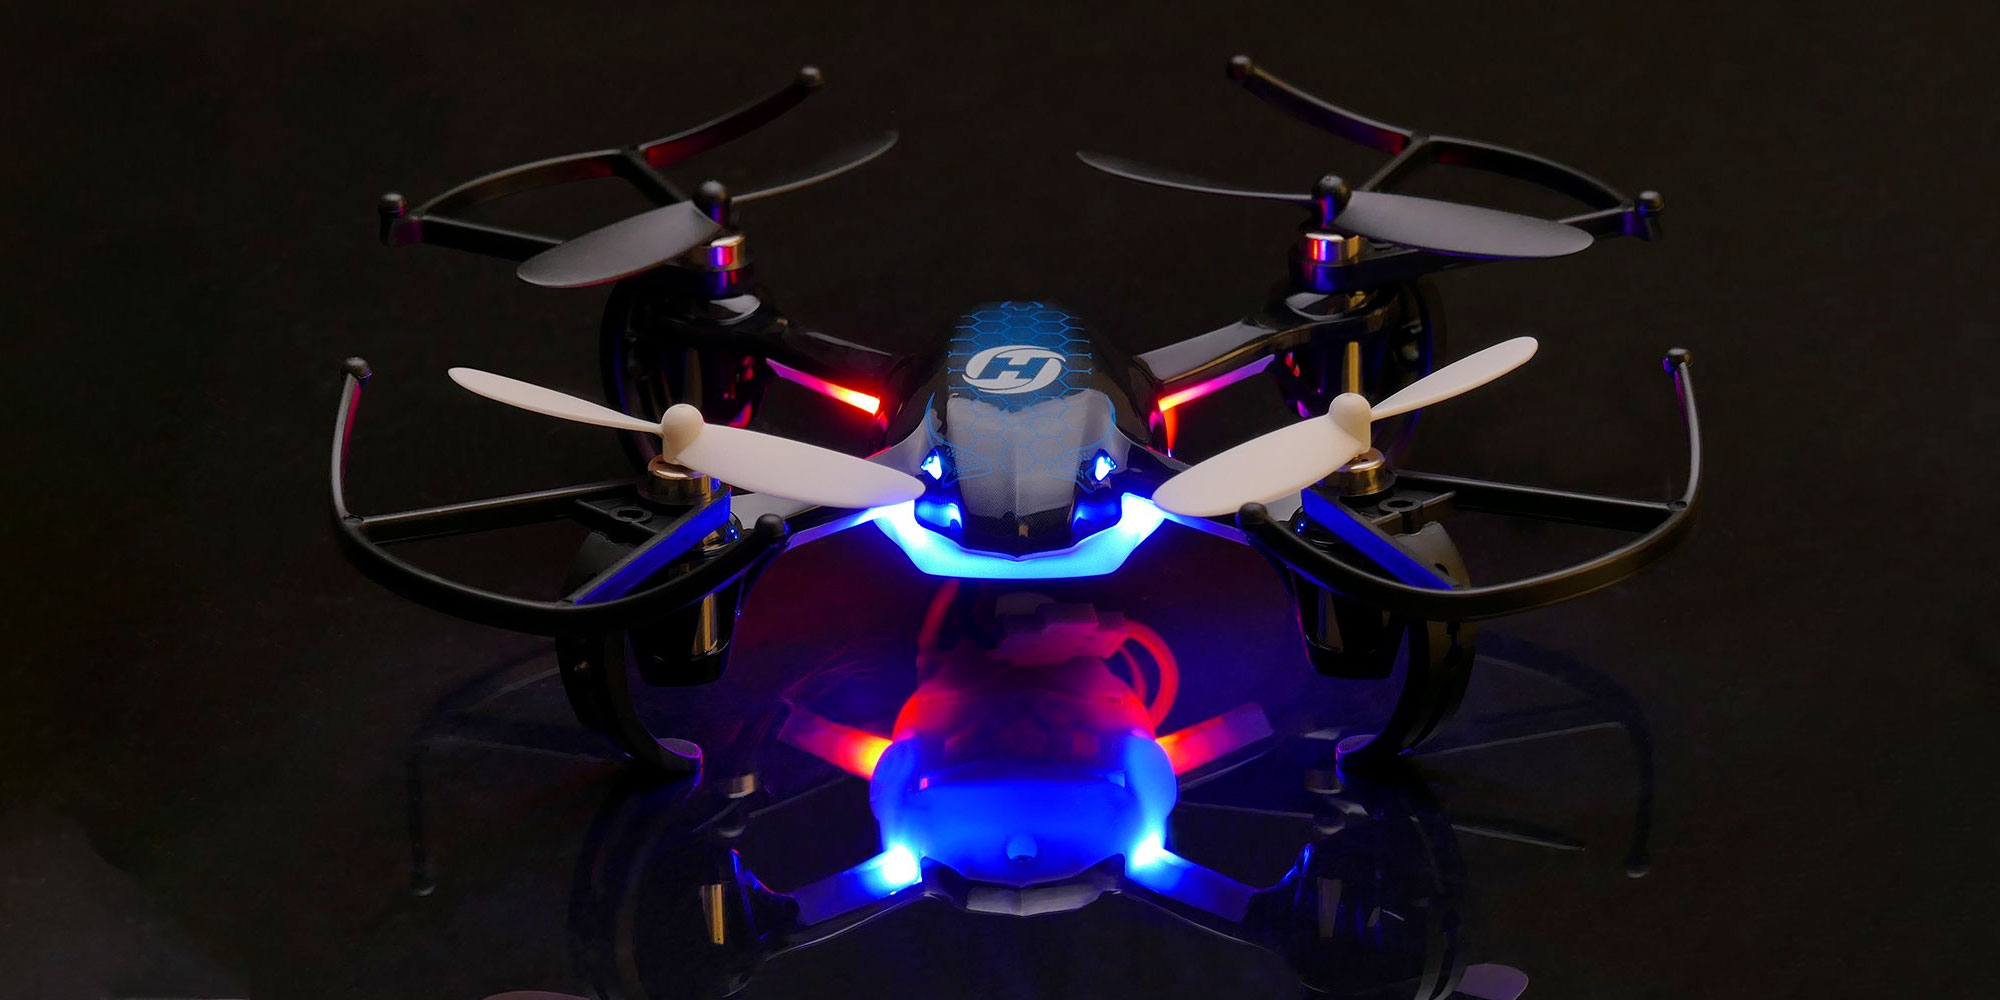 Always wanted to fly a drone? This $25 shipped model offers stabilization & is a great starting point